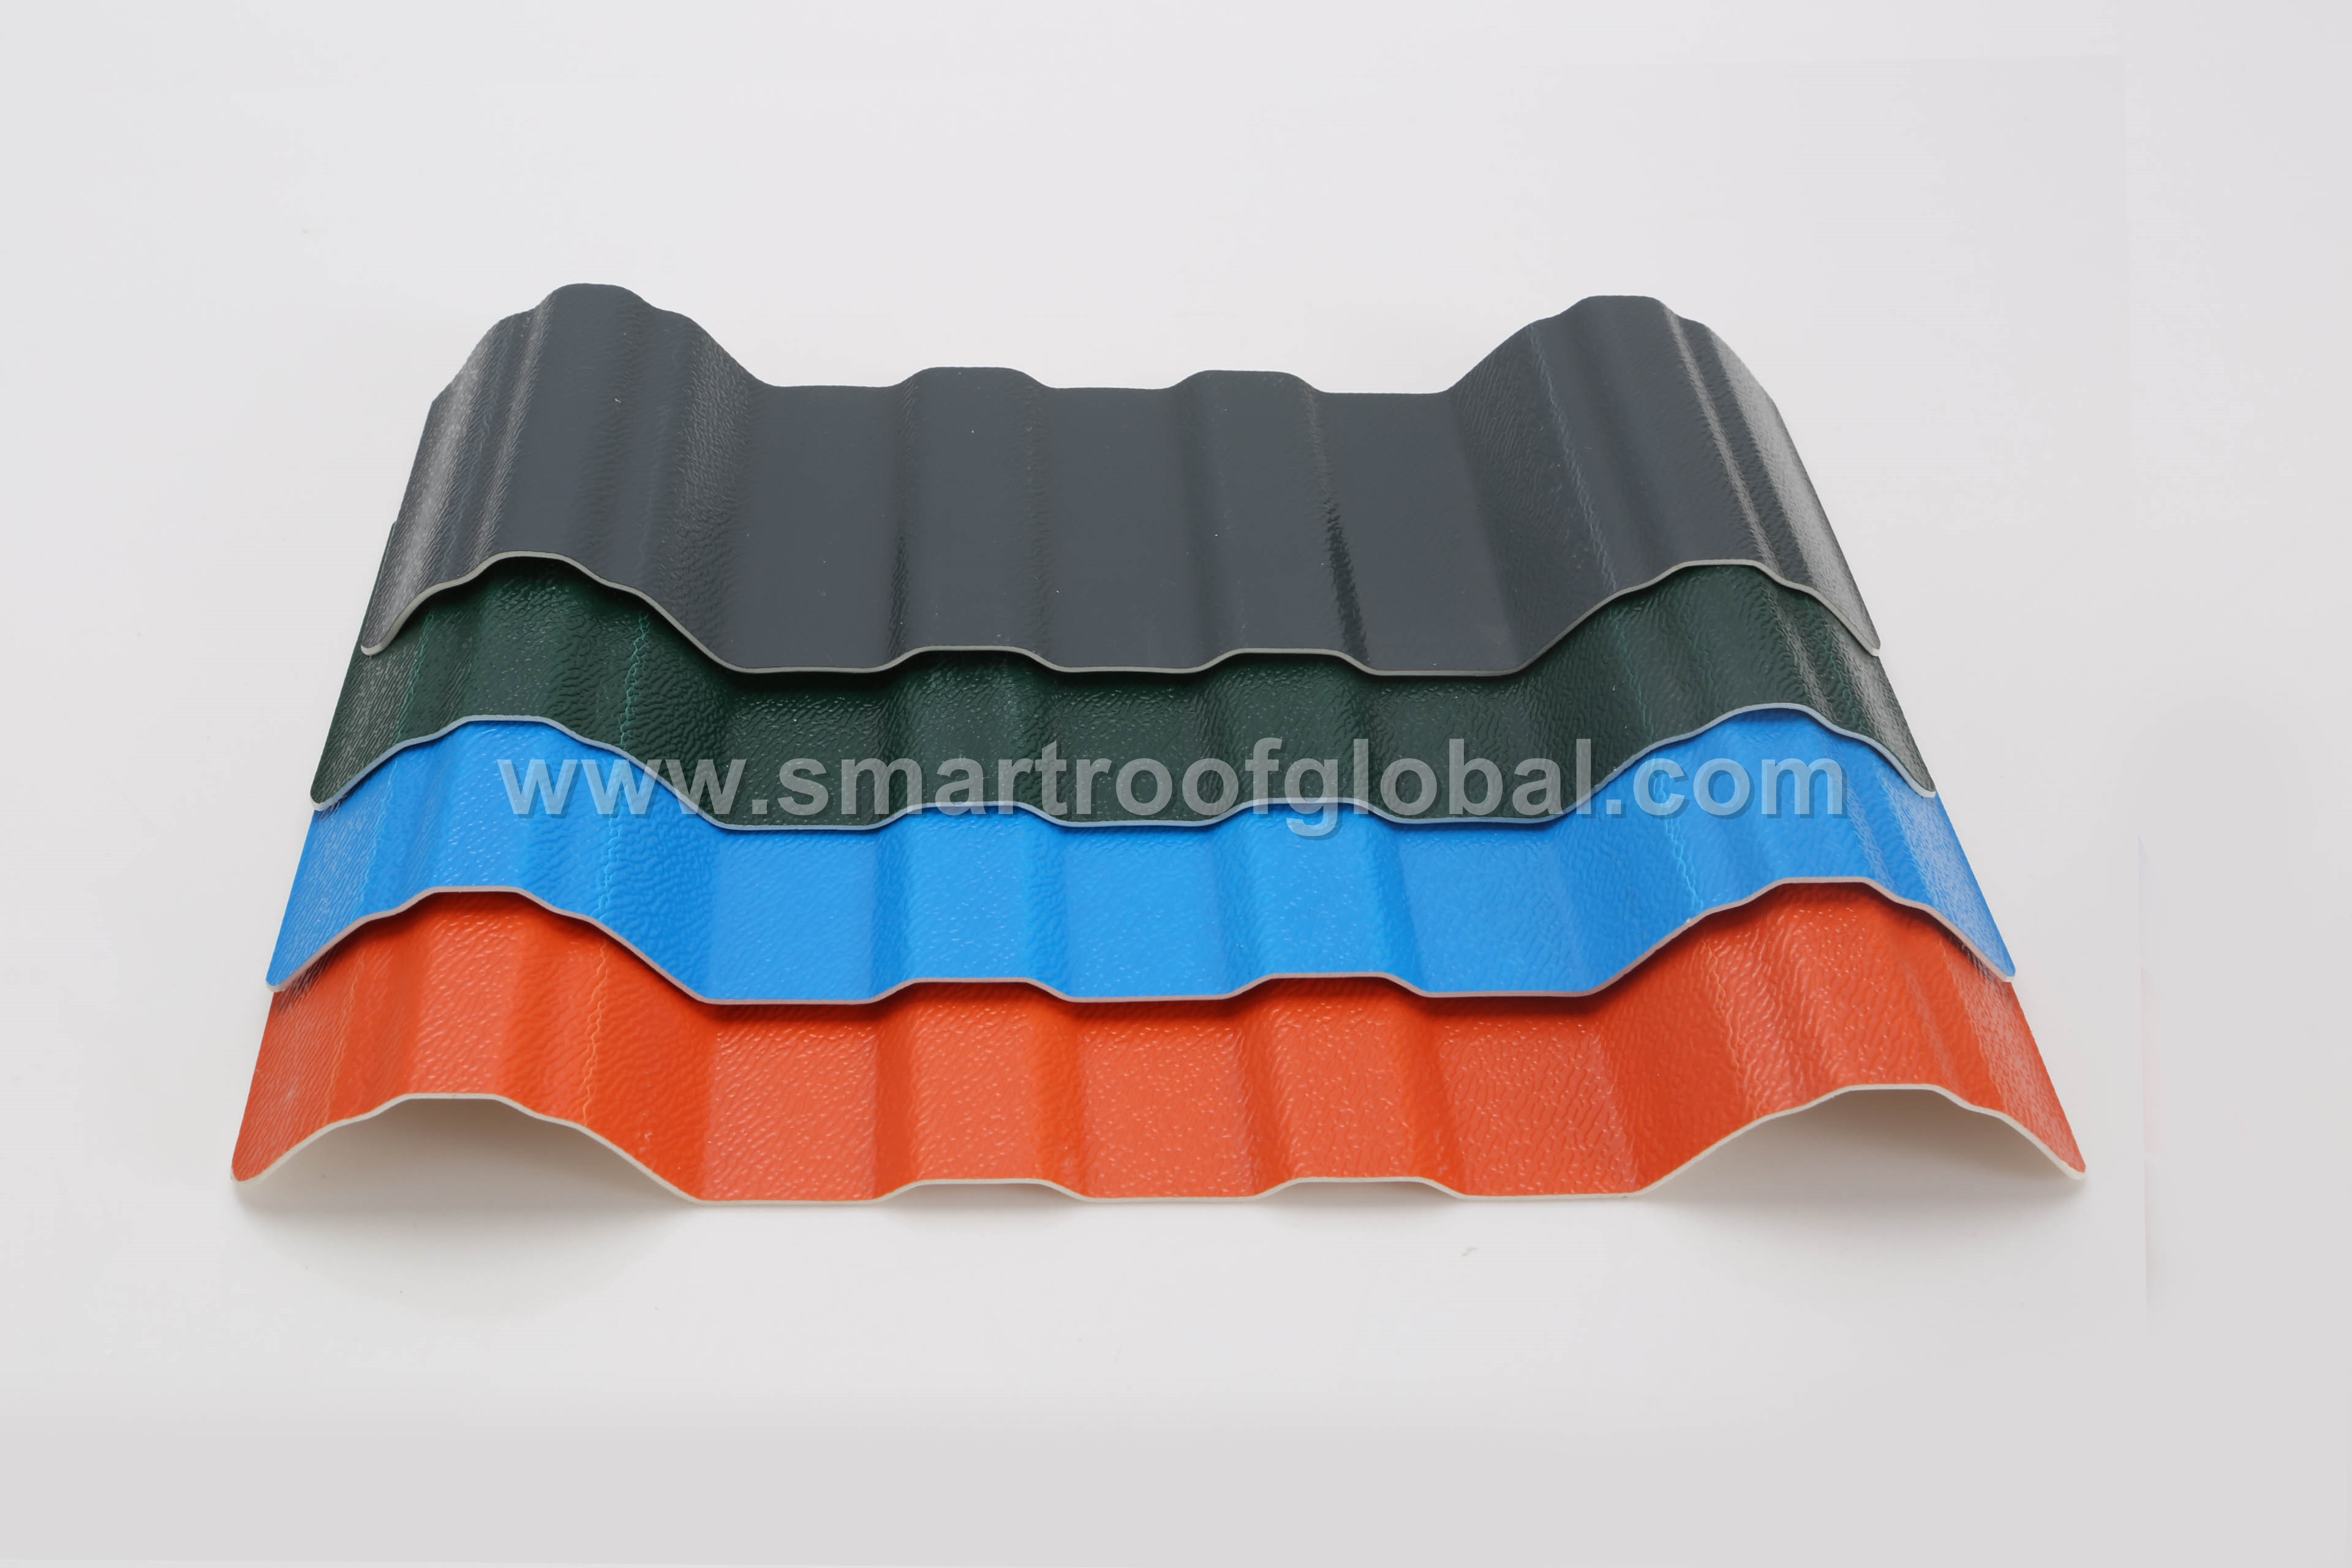 Corrugated Plastic Roof Panels Featured Image